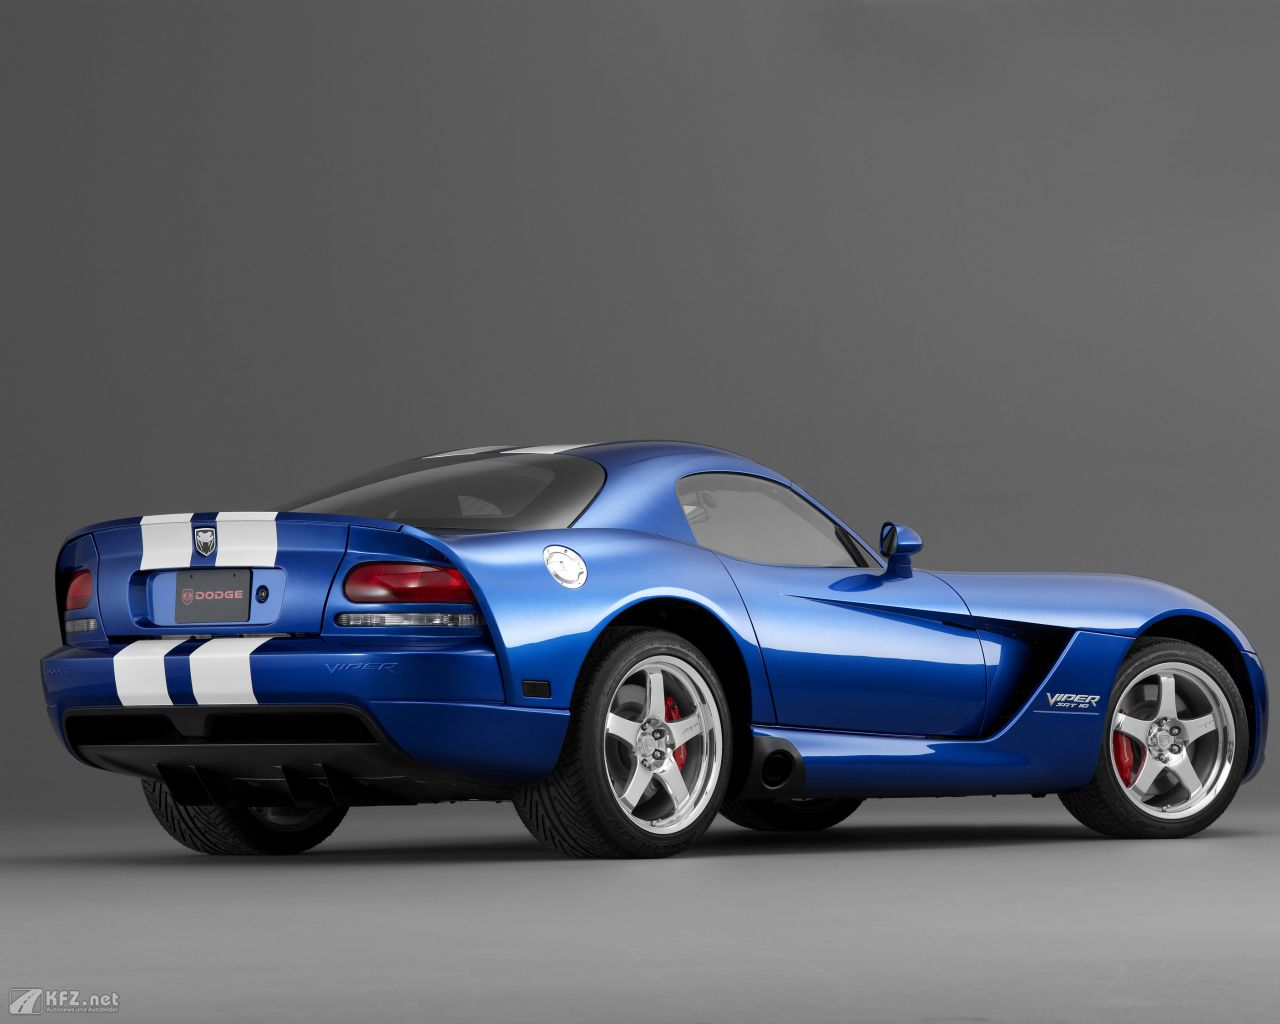 chrysler-dodge-viper-1280x1024-2